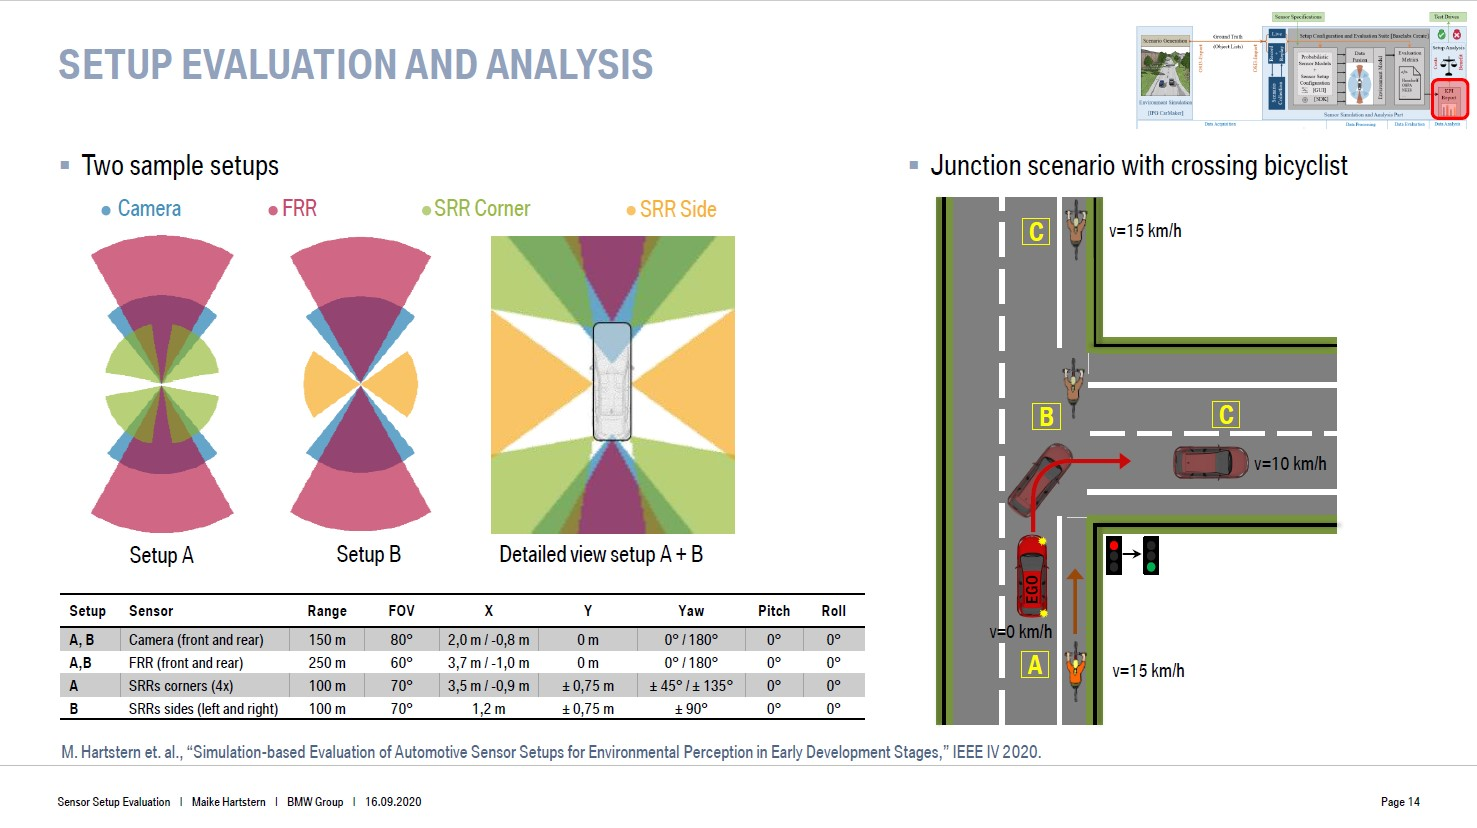 Establishing a methodology to evaluate sensor setups for highly automated driving in the early development stage